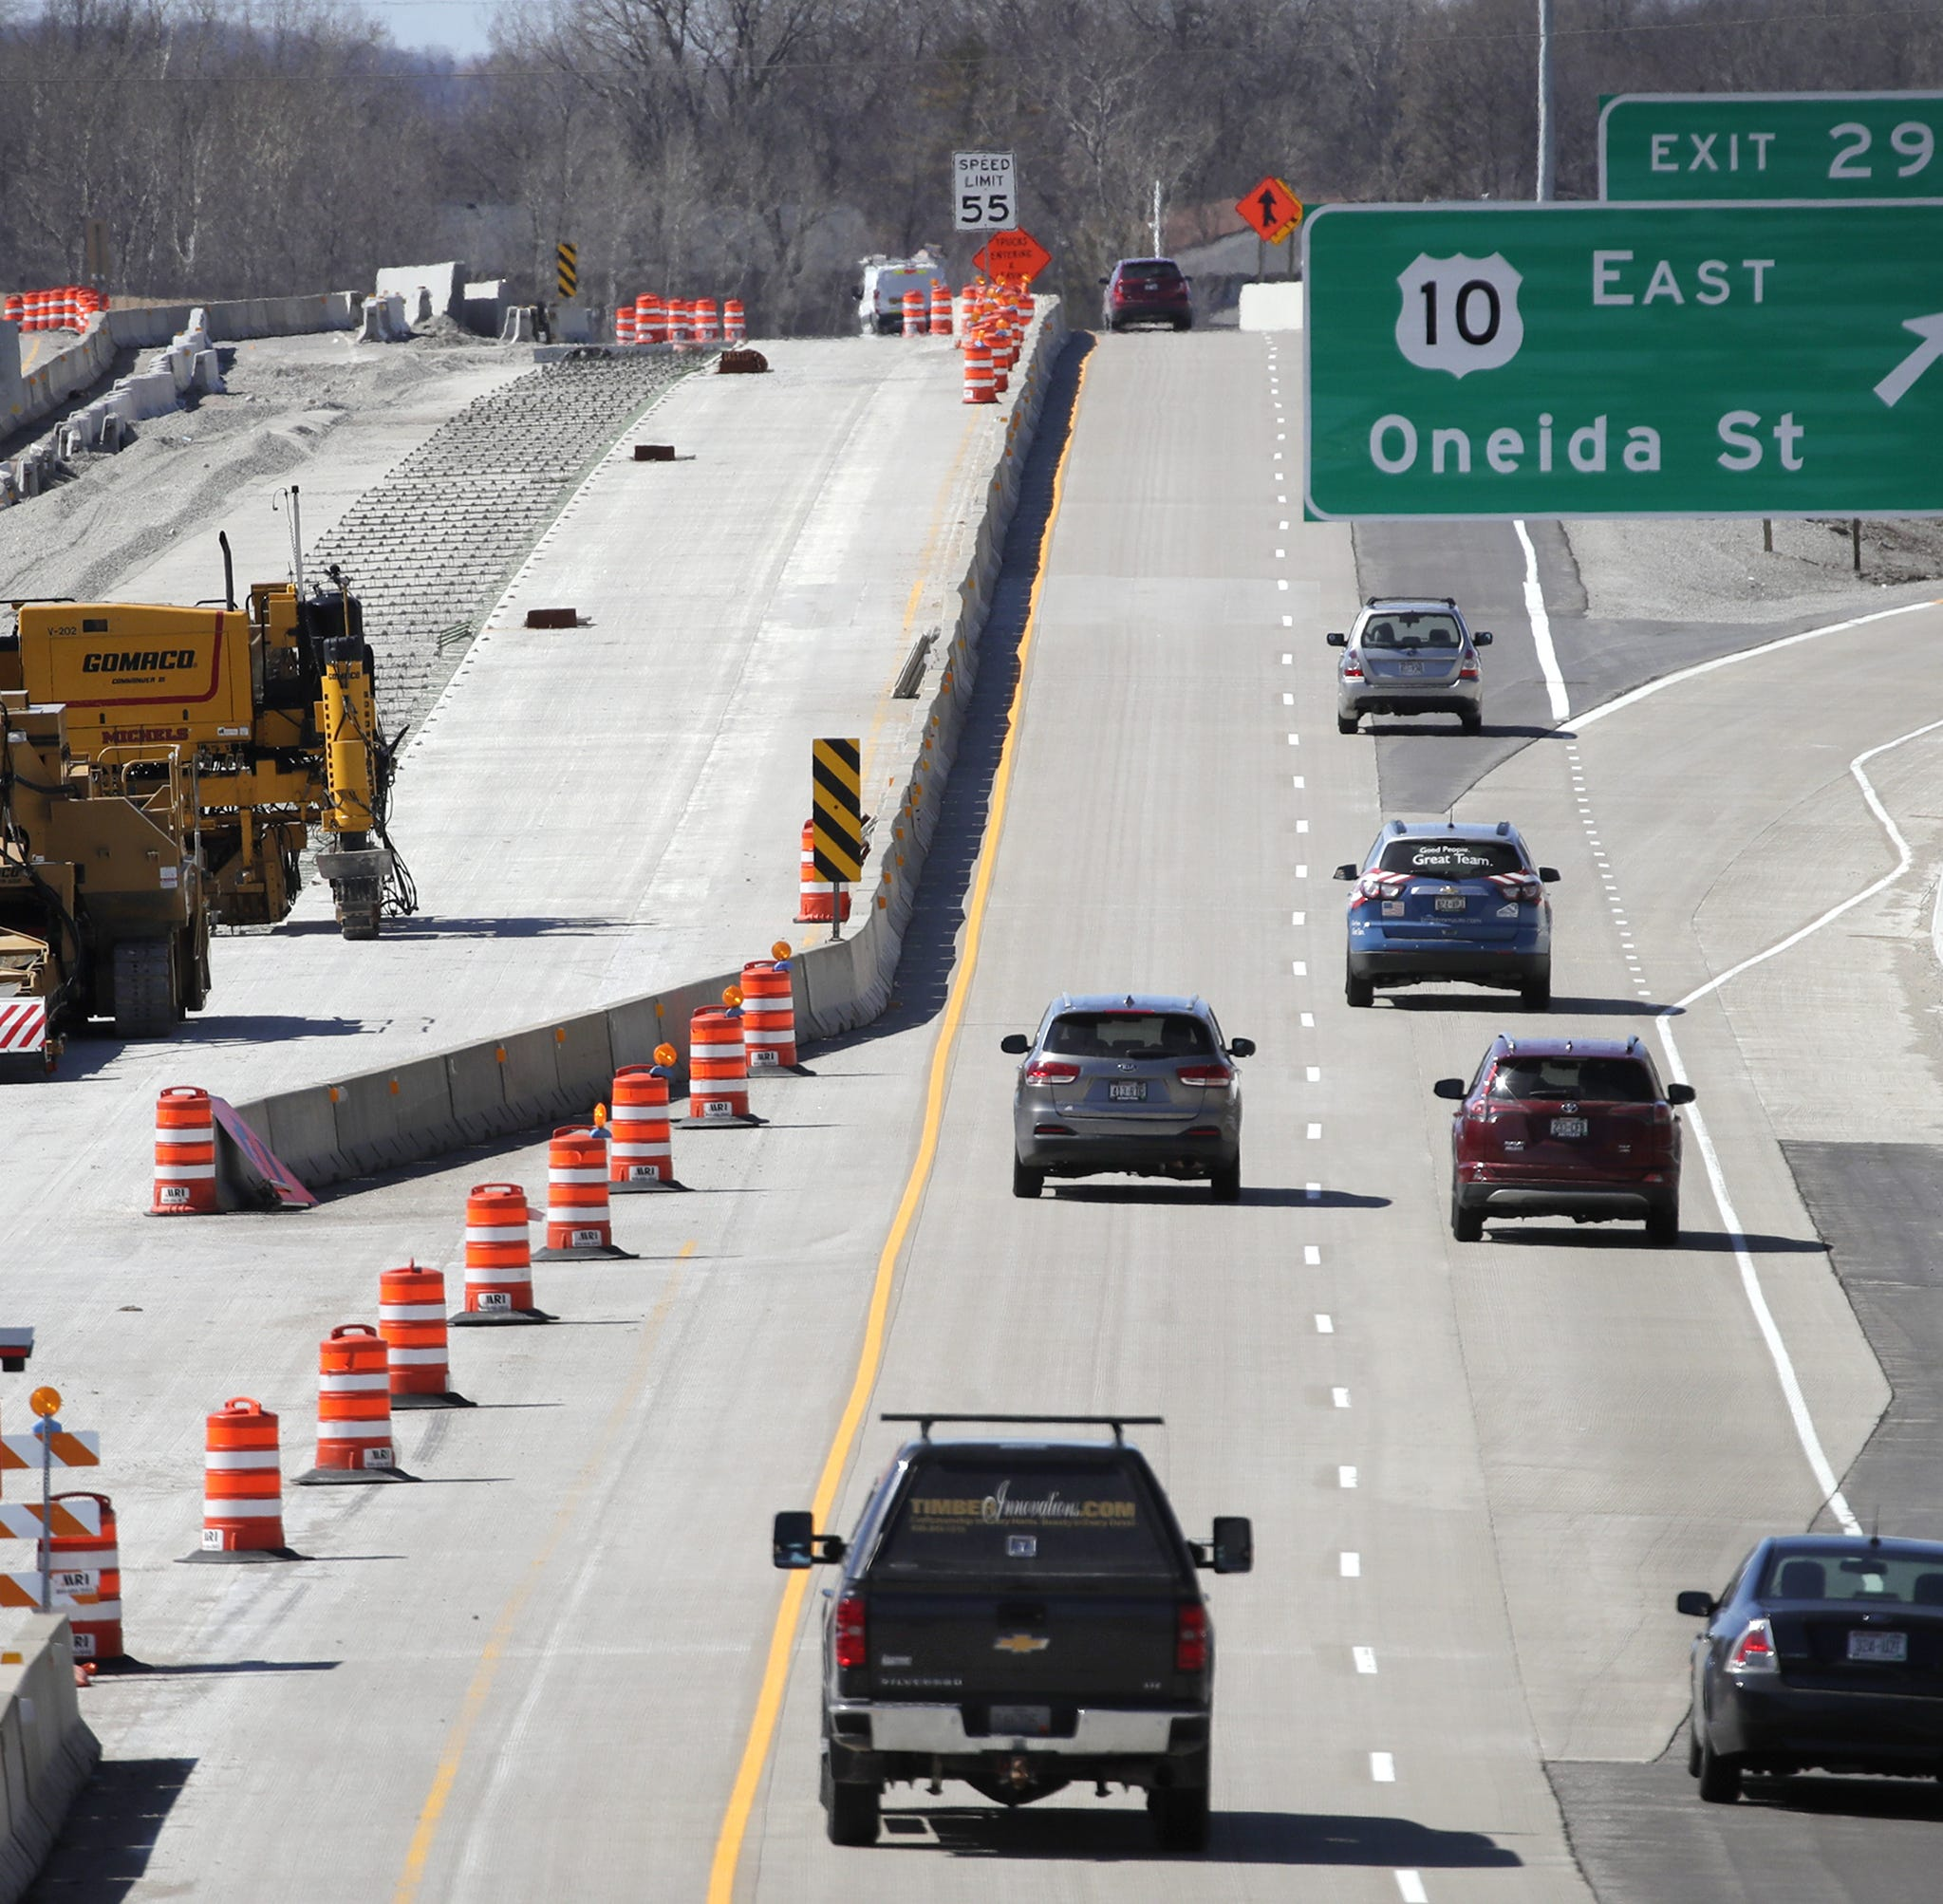 'We're in the home stretch': After years of work, end of State 441 construction in sight